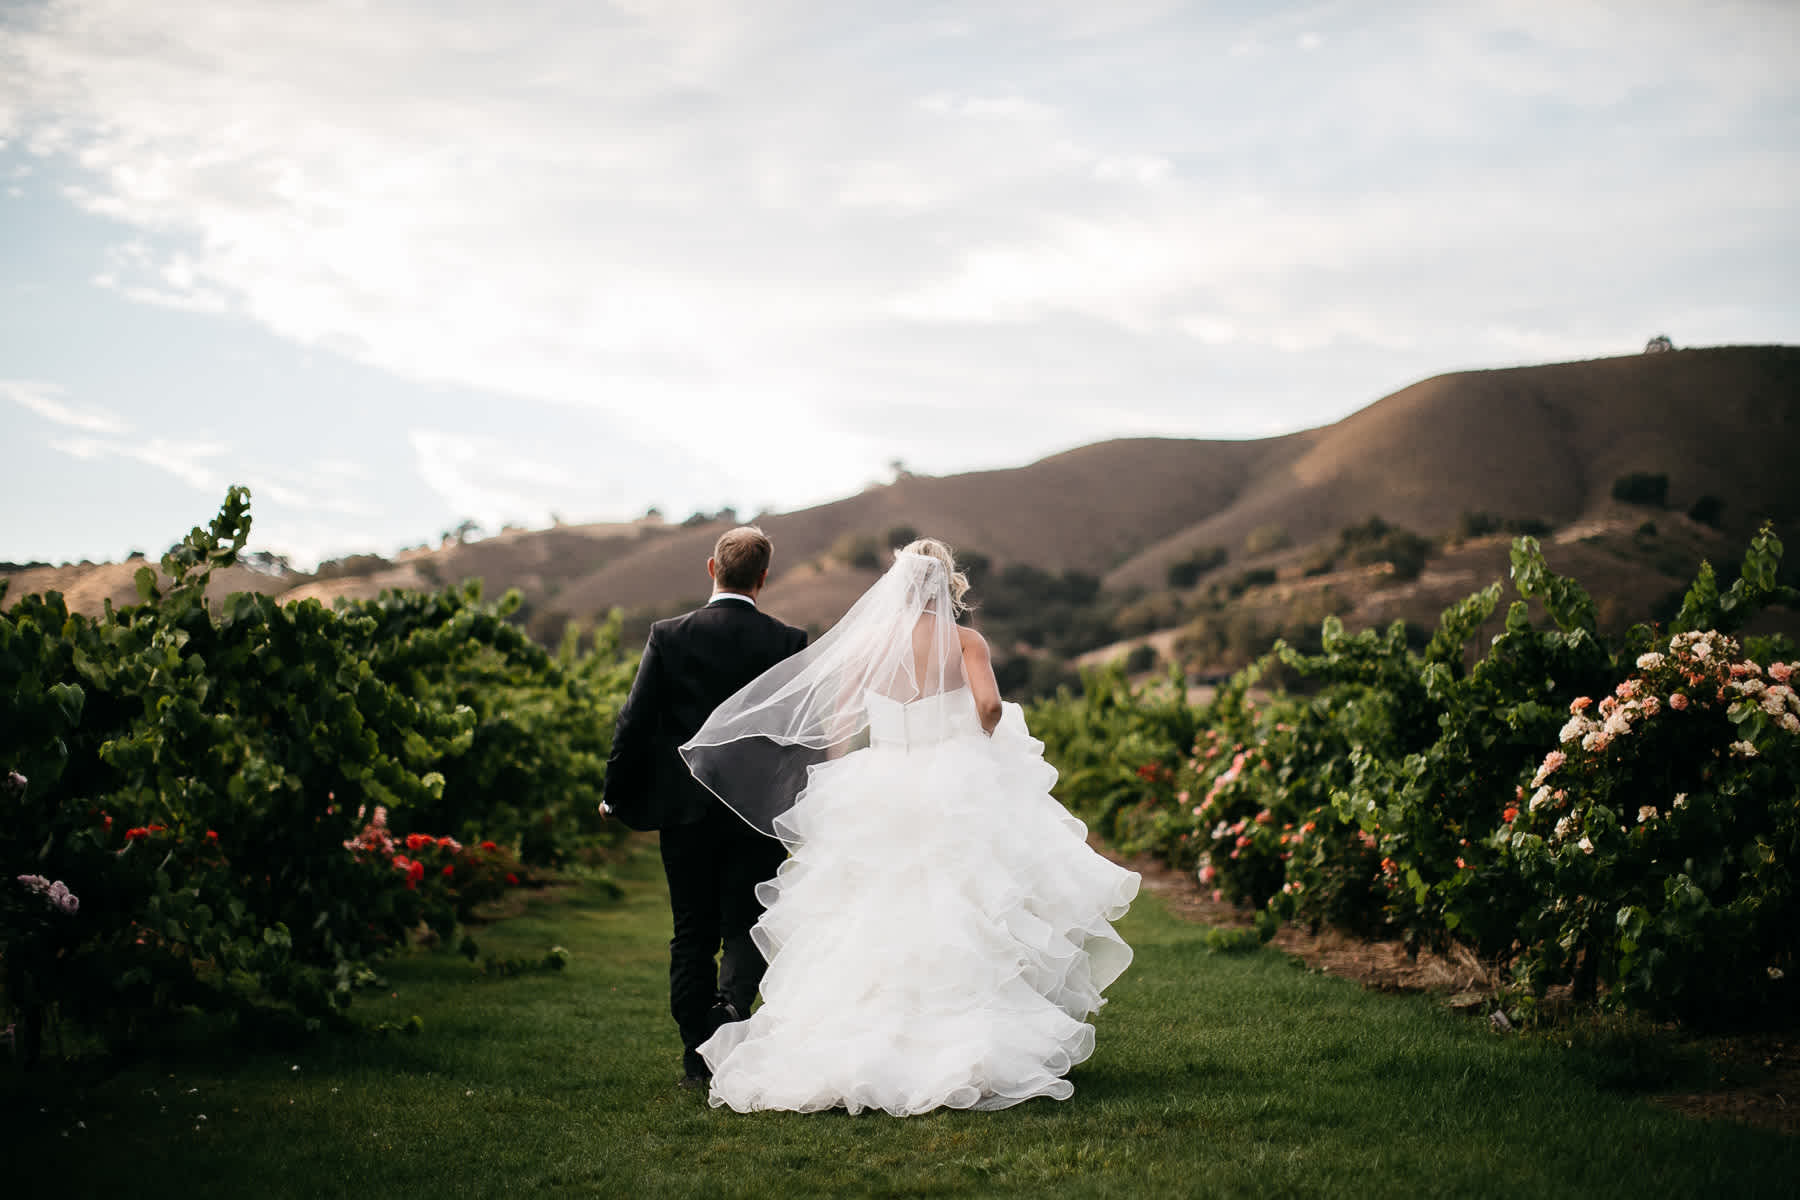 kirigin-cellars-gilroy-summer-sunset-wedding-74